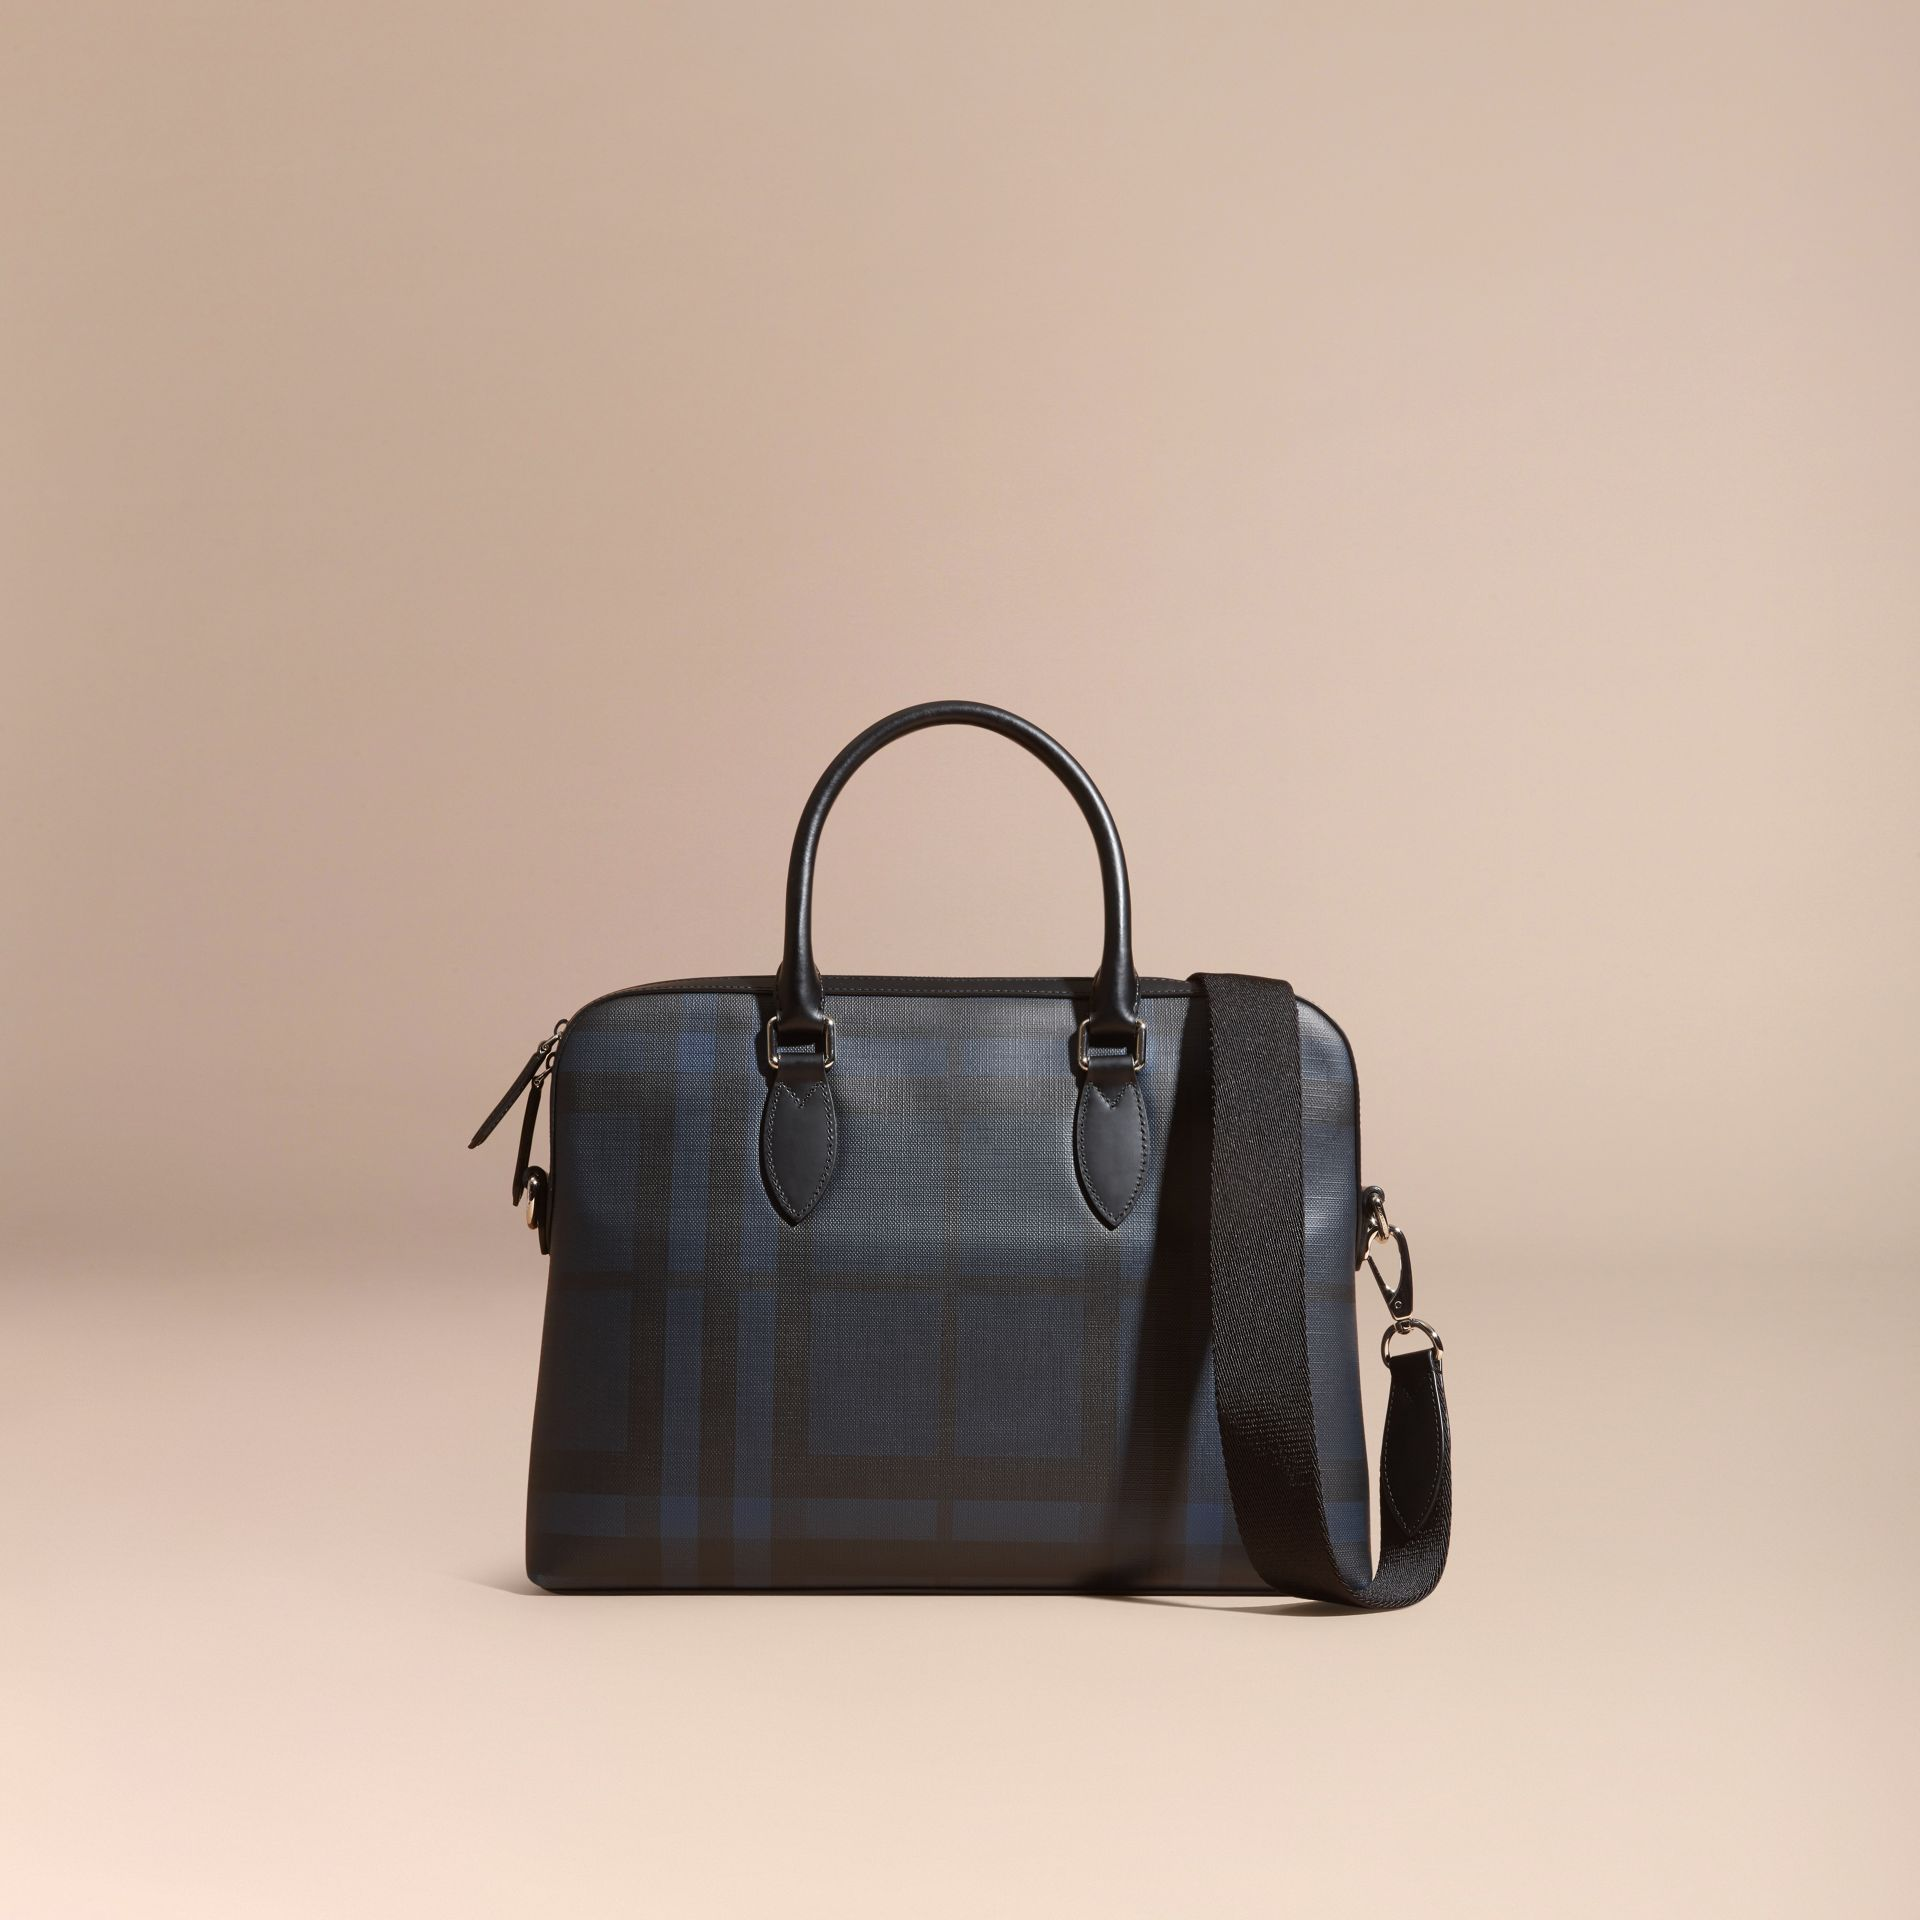 Sac The Barrow fin avec motif London check (Marine/noir) - Homme | Burberry - photo de la galerie 8